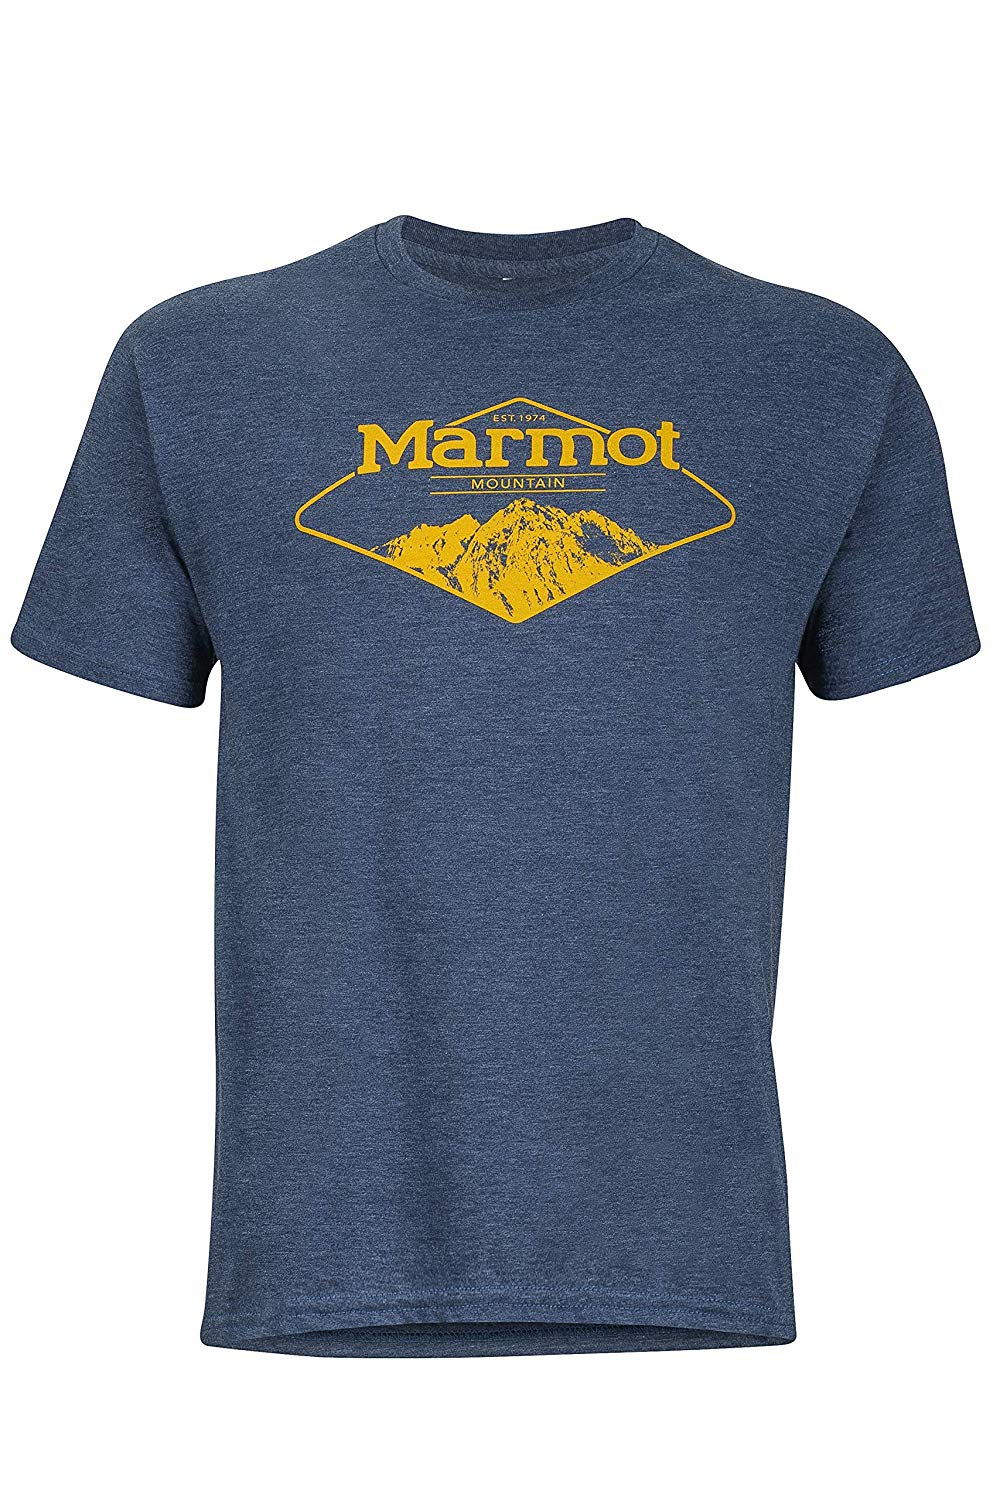 Marmot Short Sleeve Mountaineer Tee Street Wear Print Shirt Size S-3Xl